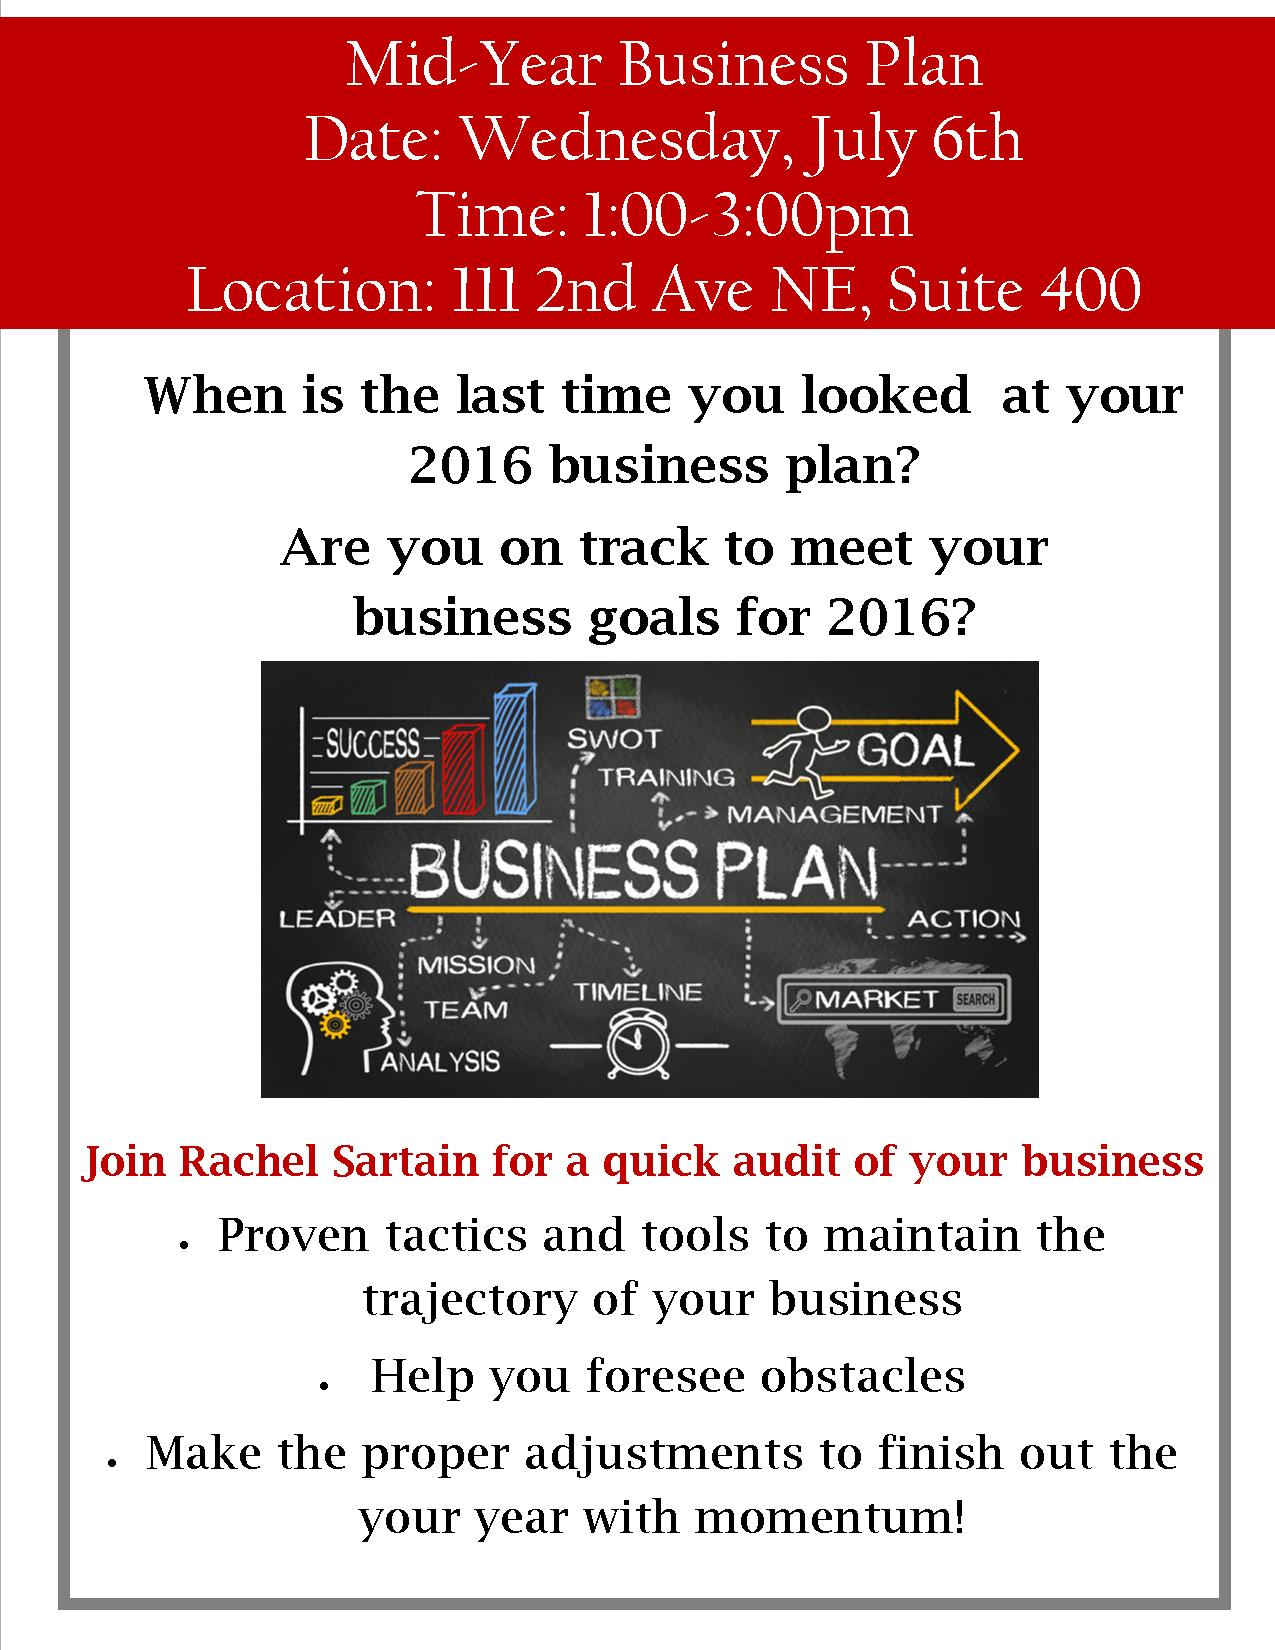 Your business plan is a tool that can